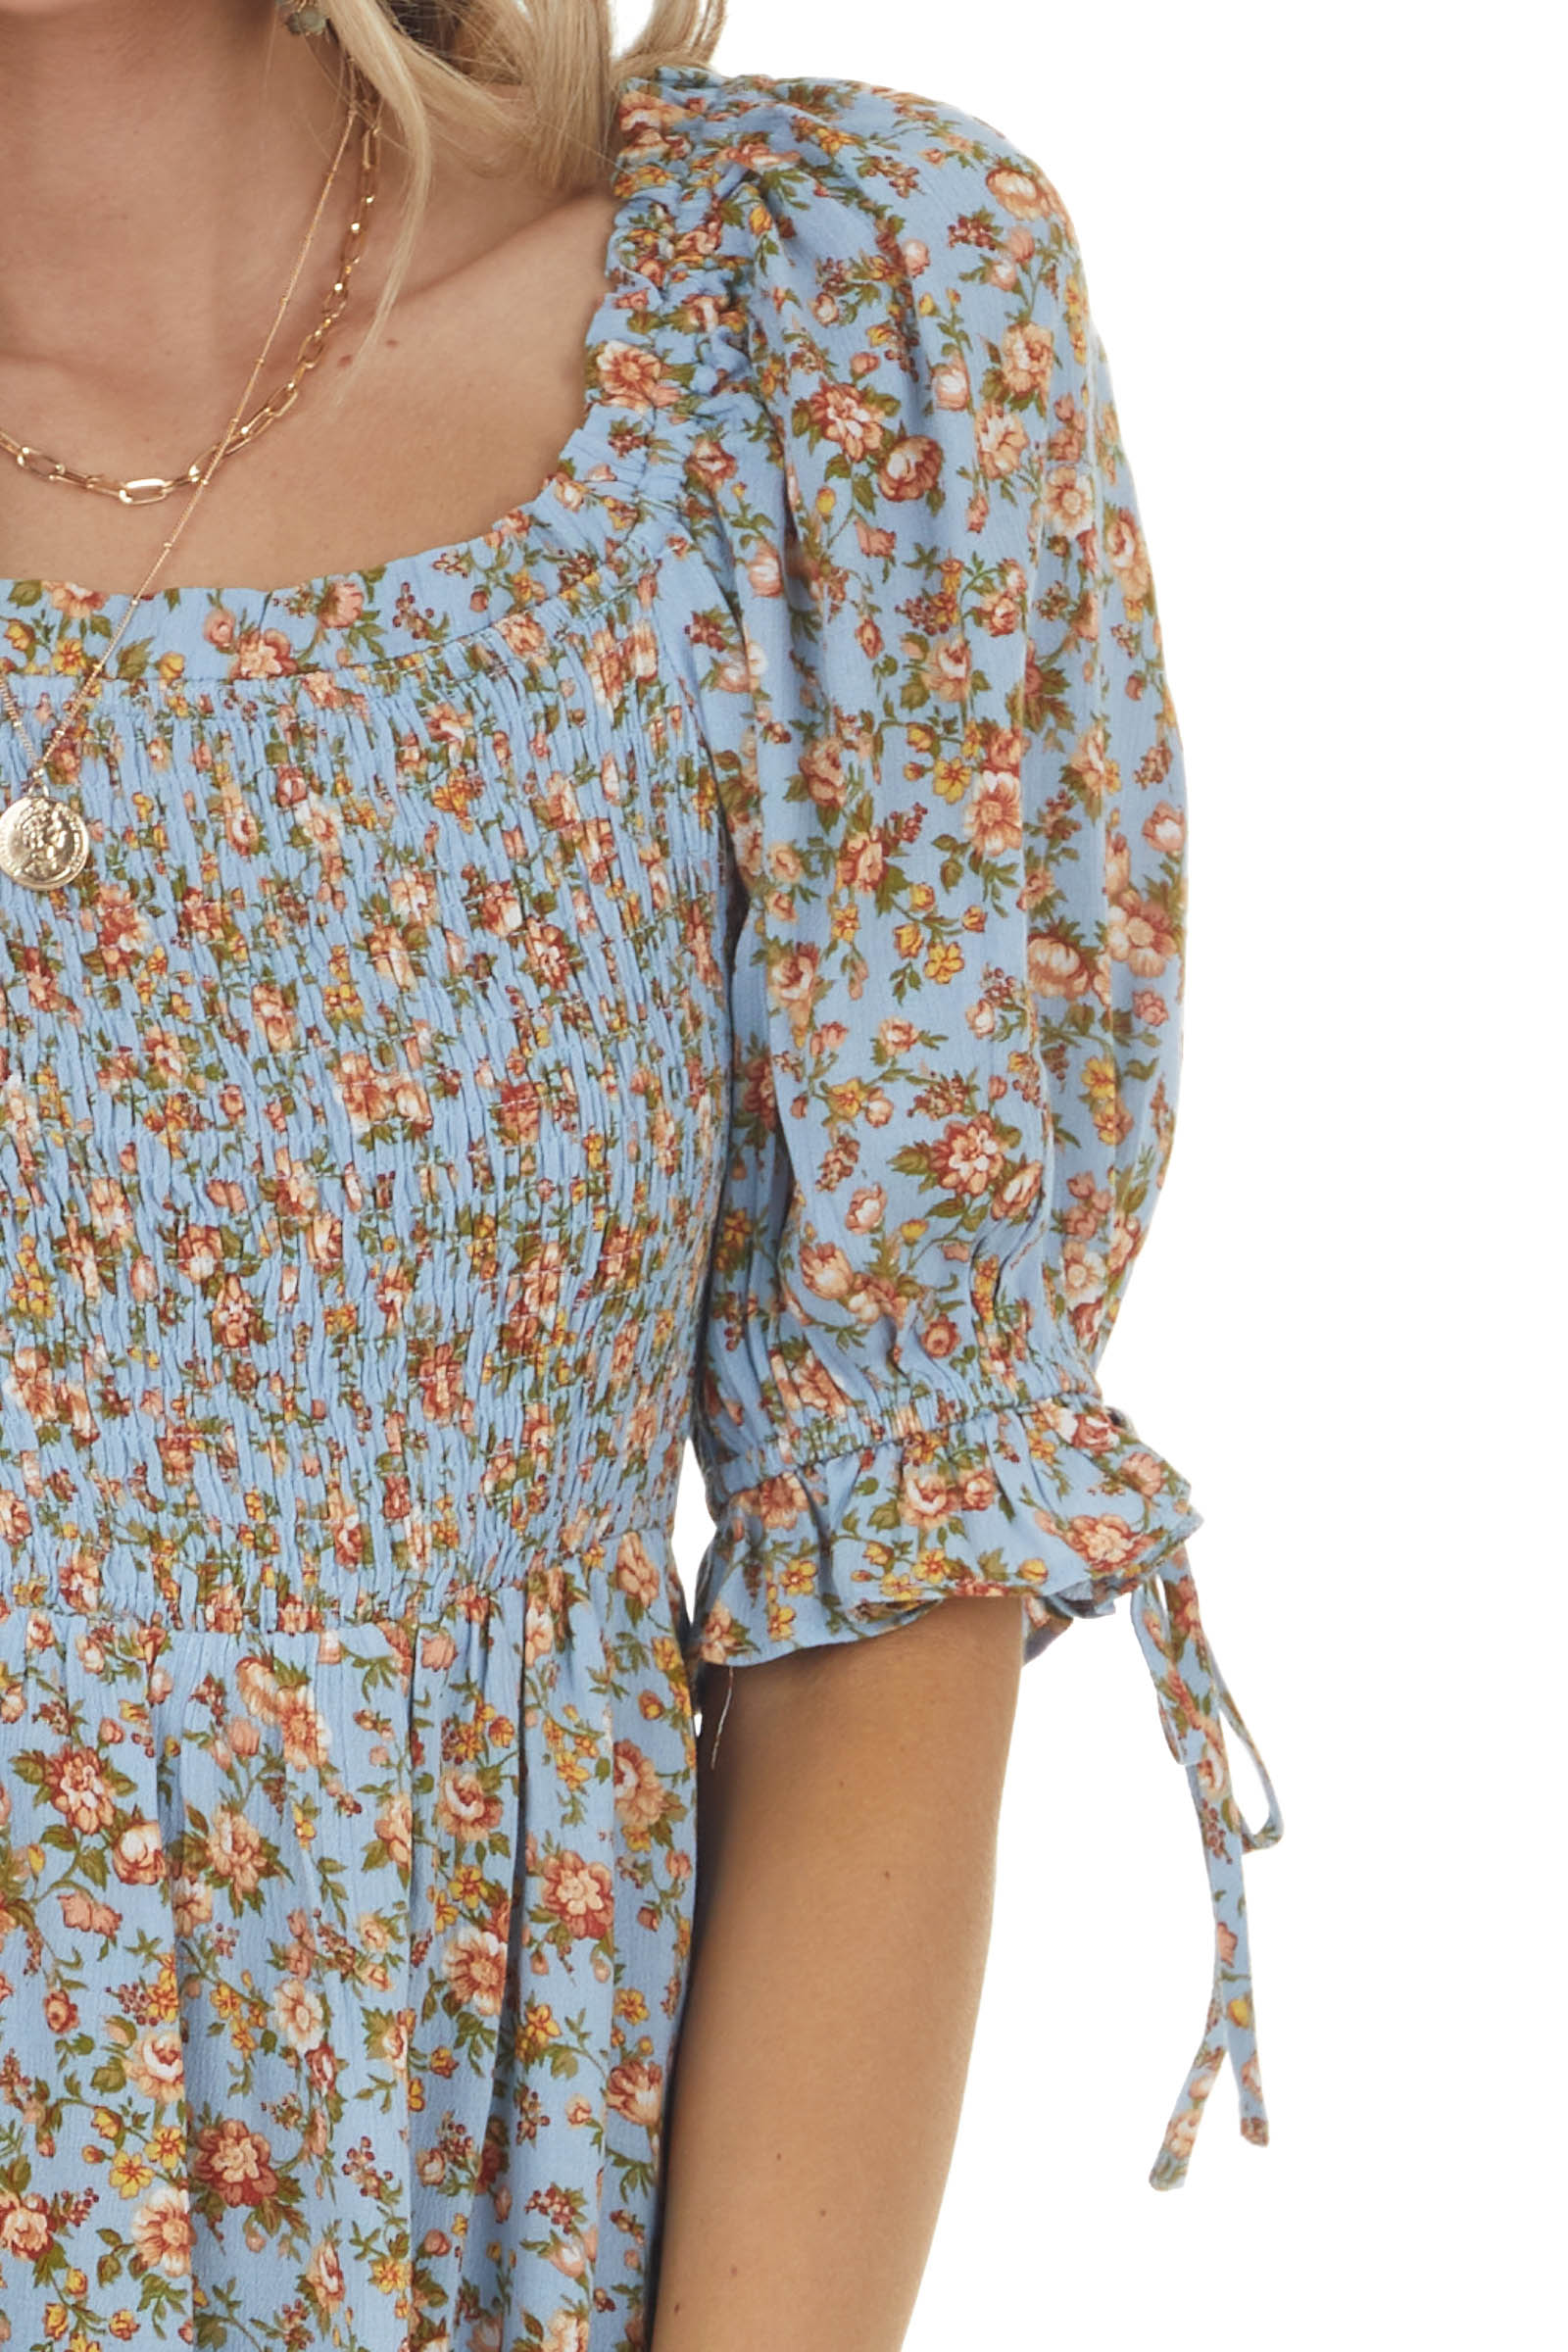 Blue Floral Print Smocked Blouse with Half Puff Sleeves